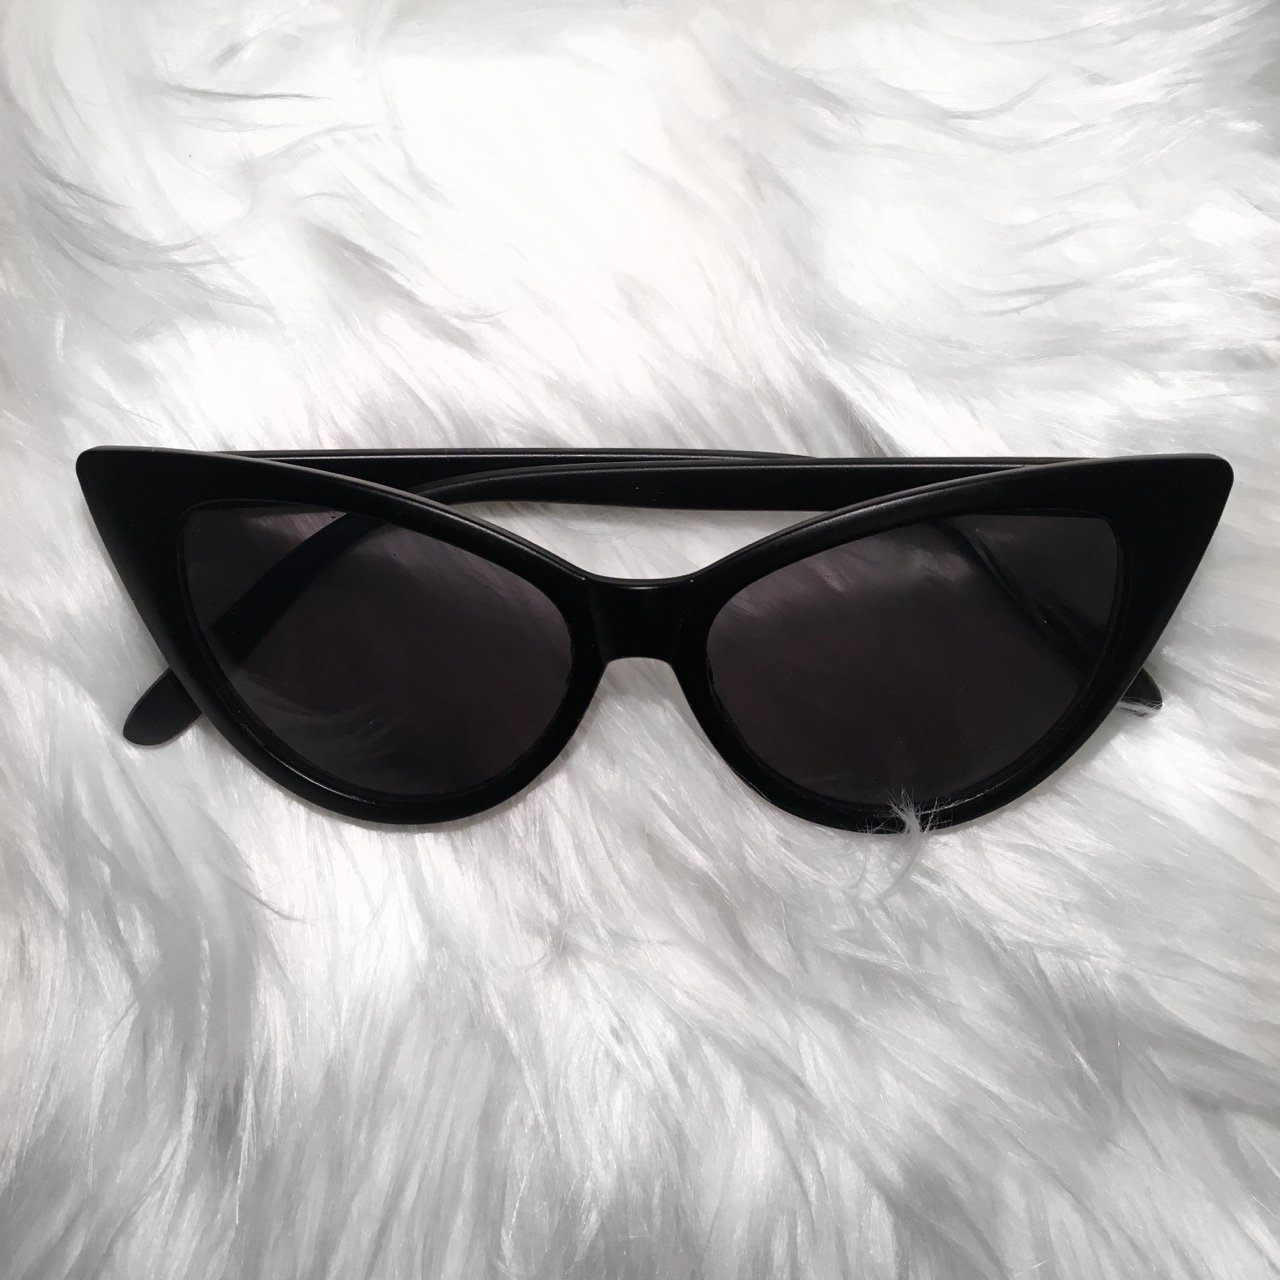 562a3a7fed1  claauddiaaaa. last year. United Kingdom. BLACK X RETRO  VINTAGE CAT EYE  SUNGLASSES